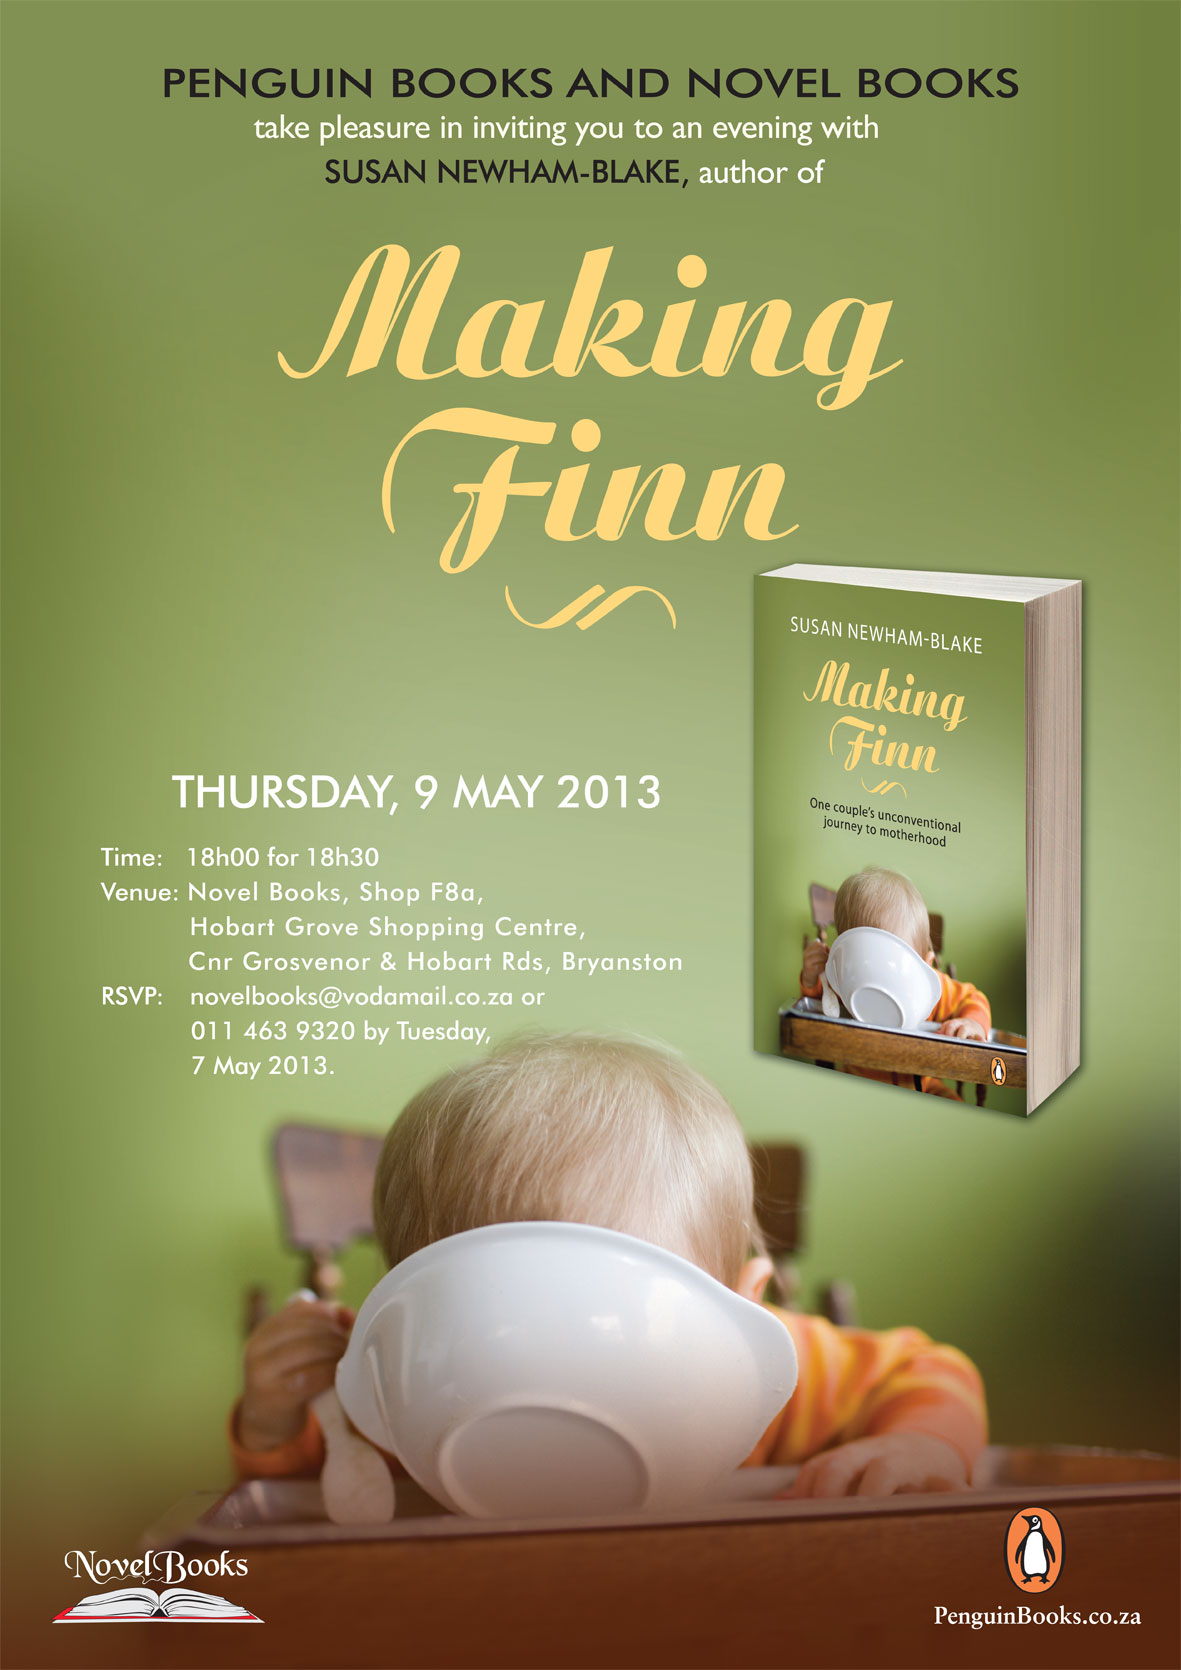 Novel Books Invitation to Making Finn